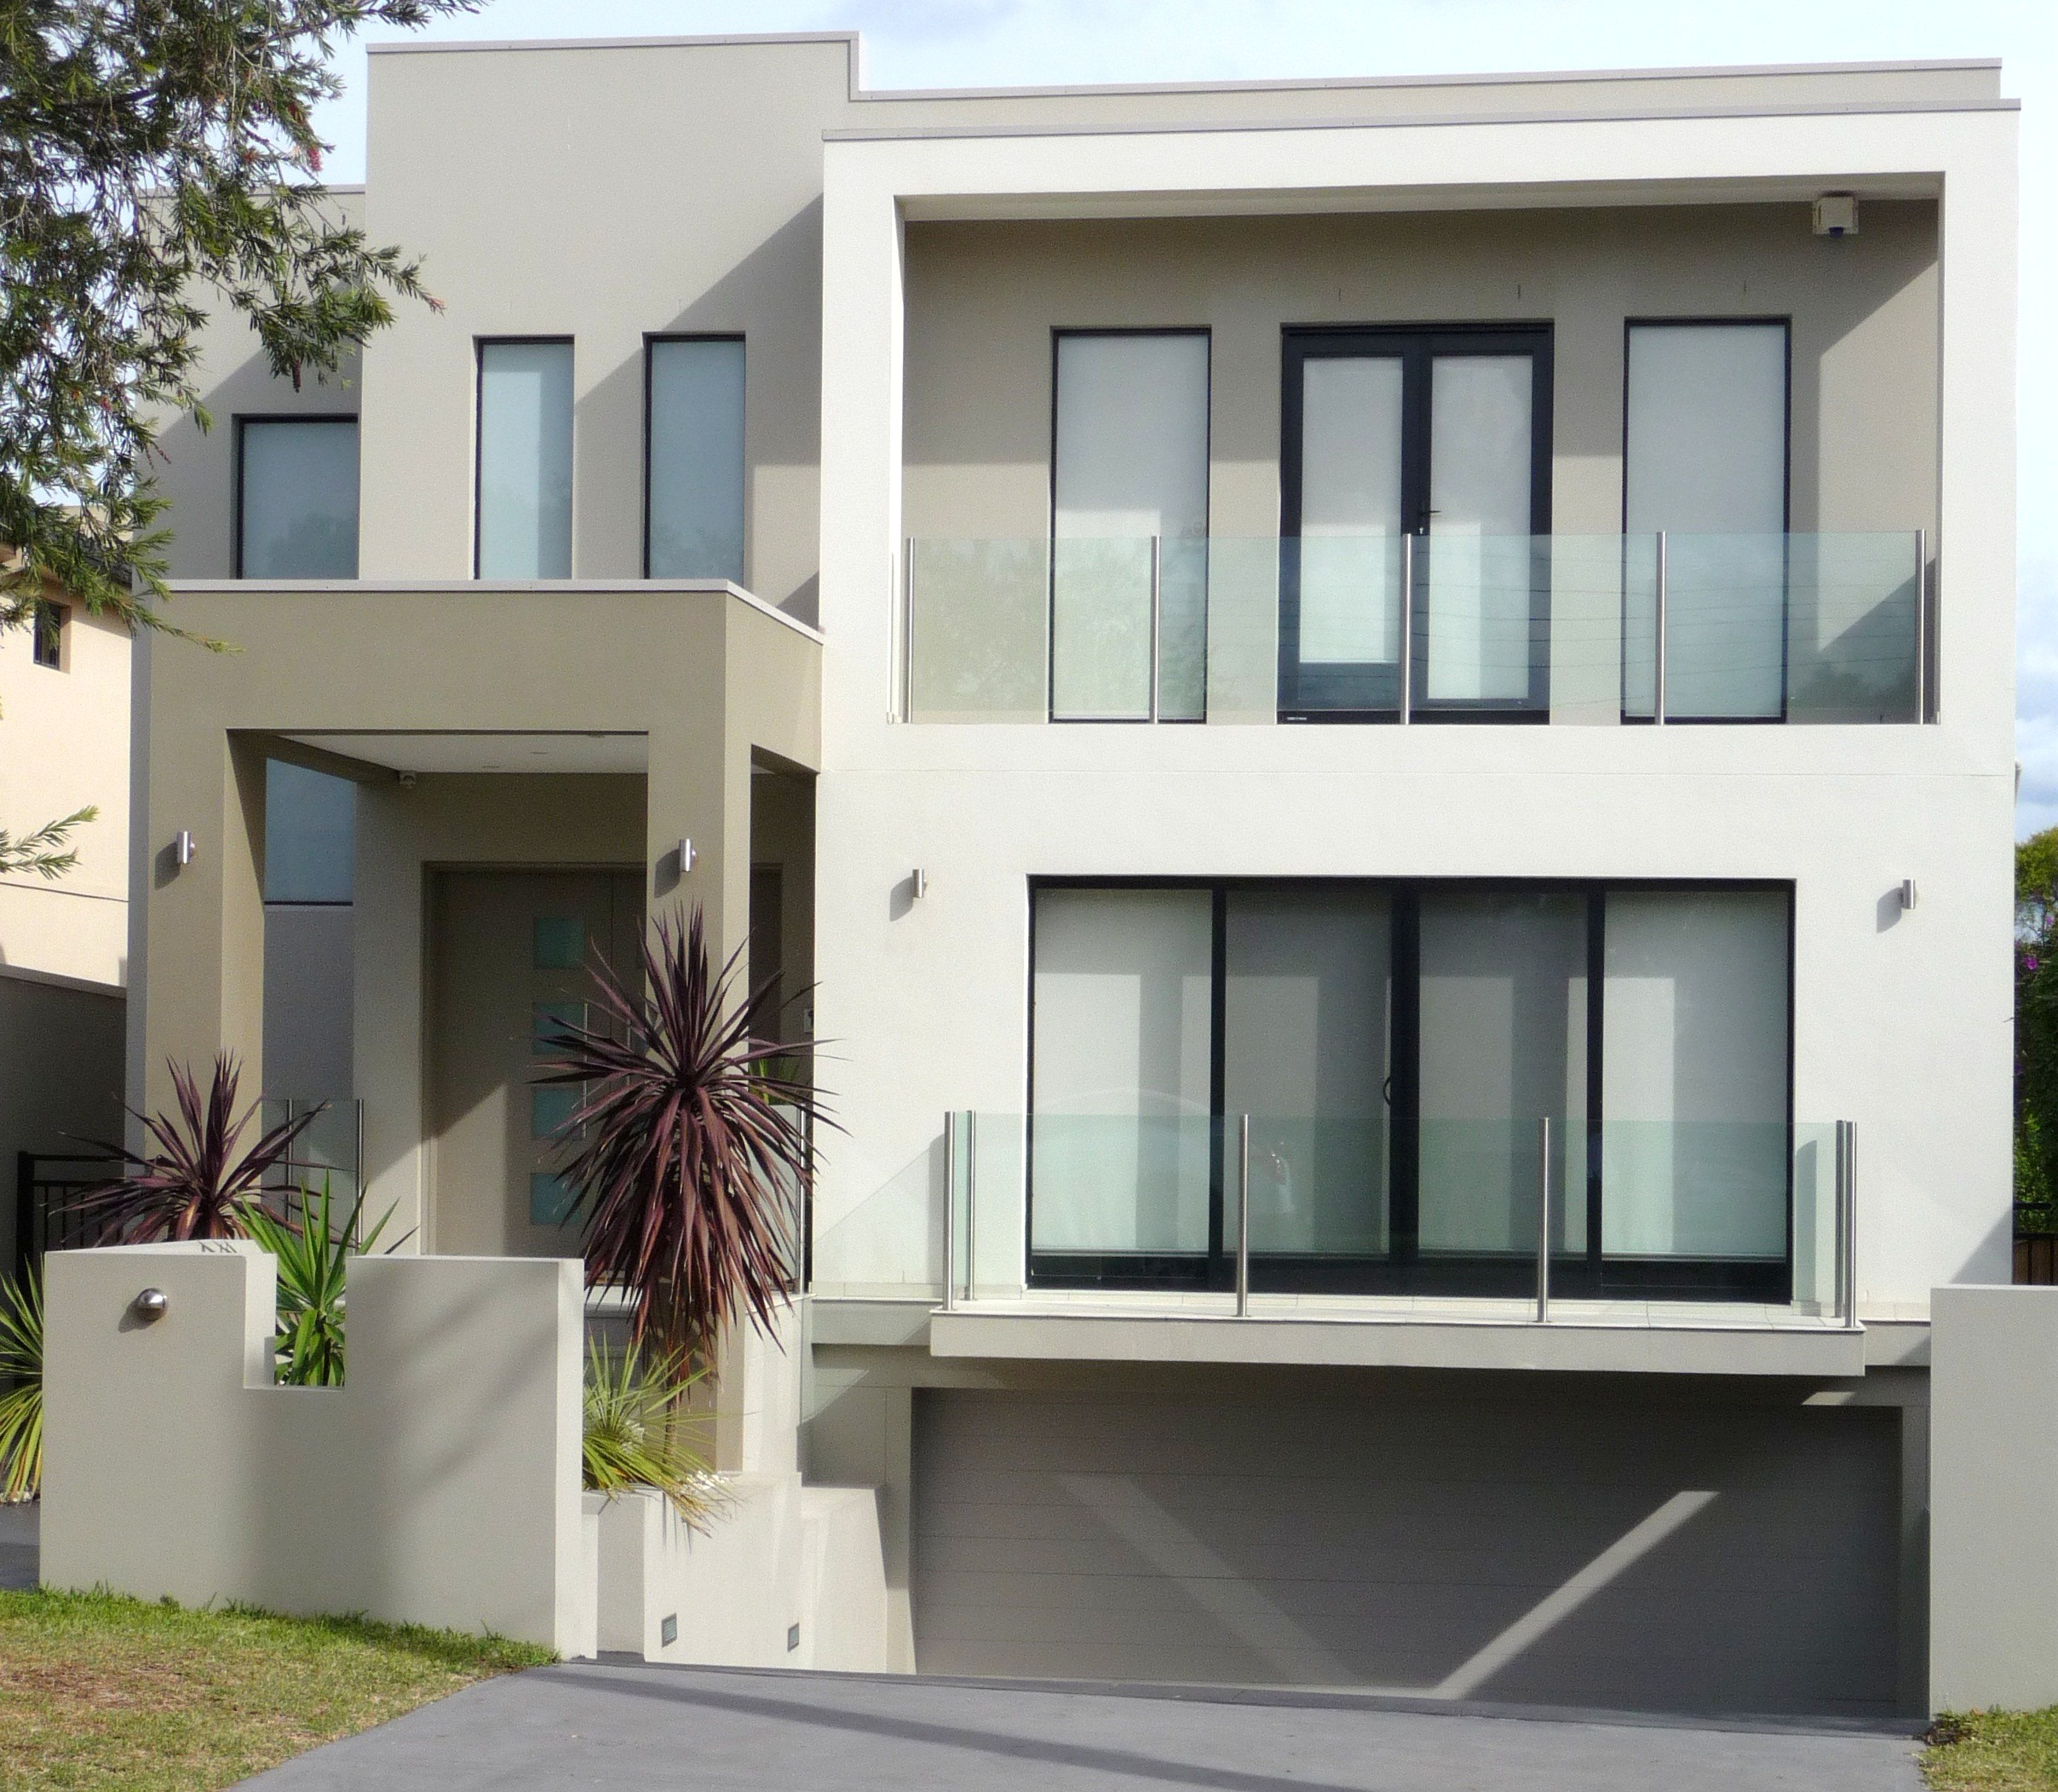 Dual Occupancy Townhouses Residential Commercial Industrial Mixed use Units Apartments Childcare Aged Care Hurstville Canterbury Bankstown Liverpool Parramatta Chatswood Kogarah Rockdale Sutherland Shire Architects Archizen Design Council Sydney